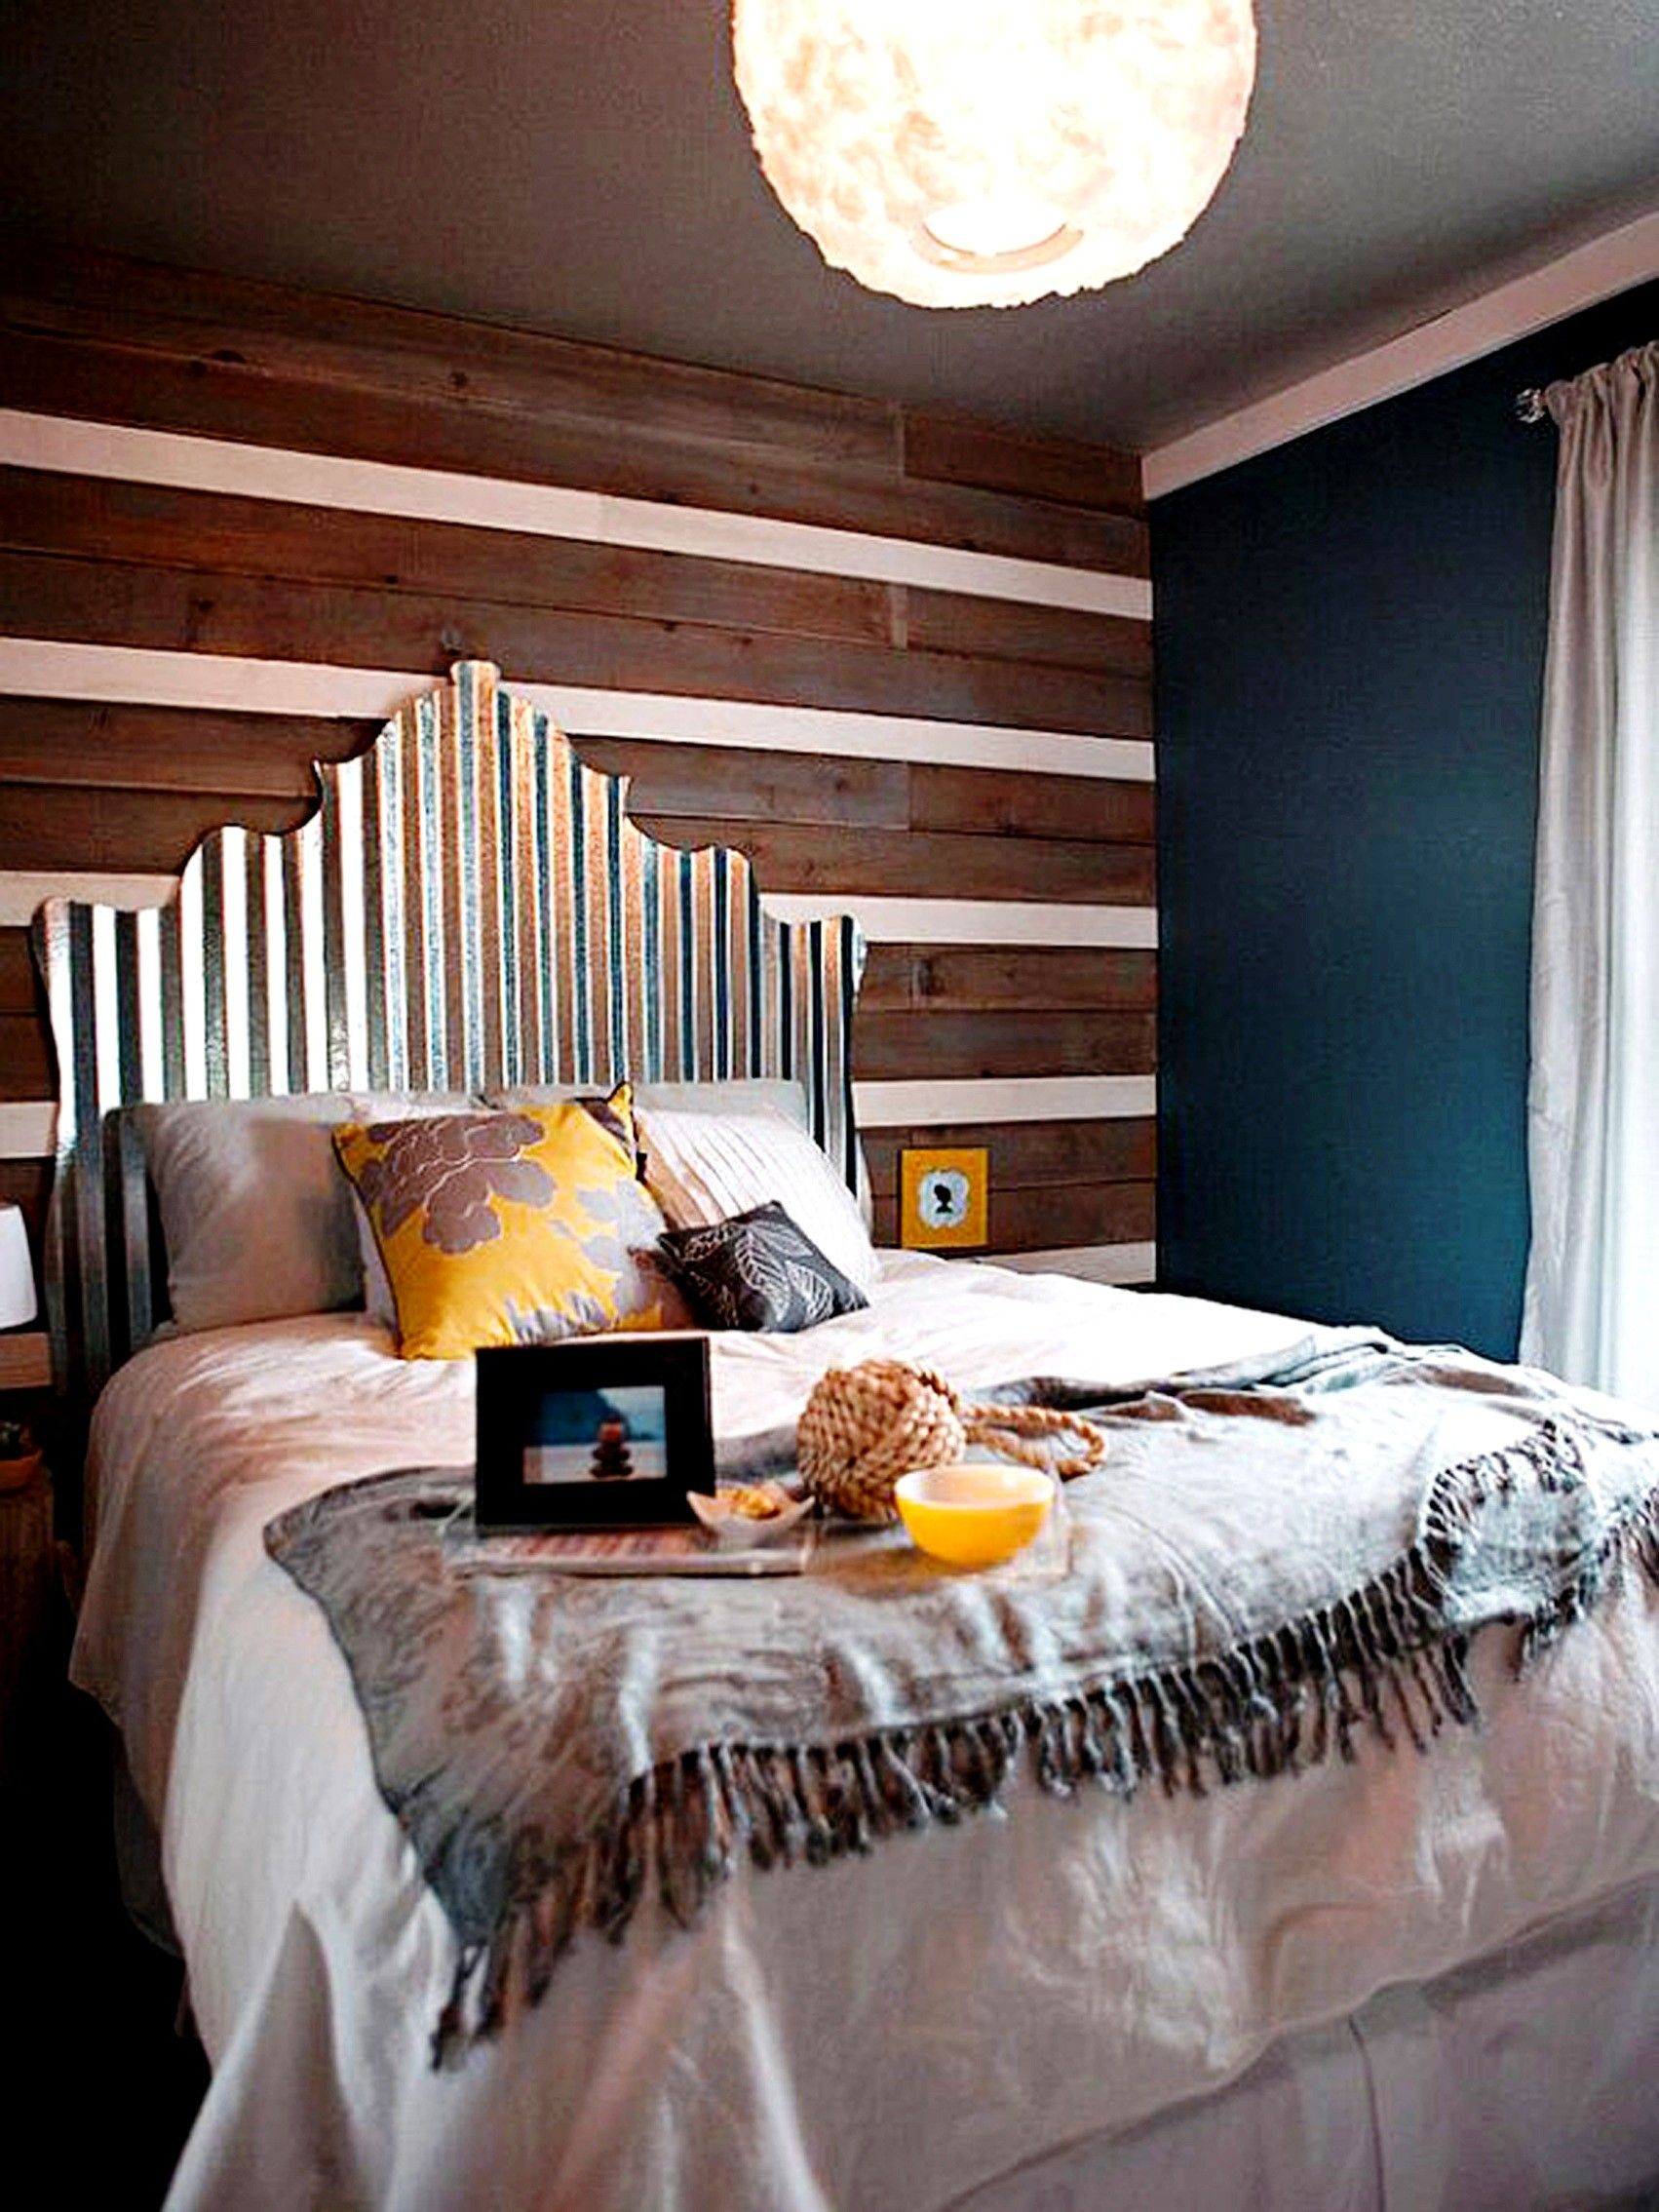 Wall Painting Designs For Bedroom Impressive Grey Bedroom Wall Paint Combinedgrey Bed With Brown Blanket Design Ideas